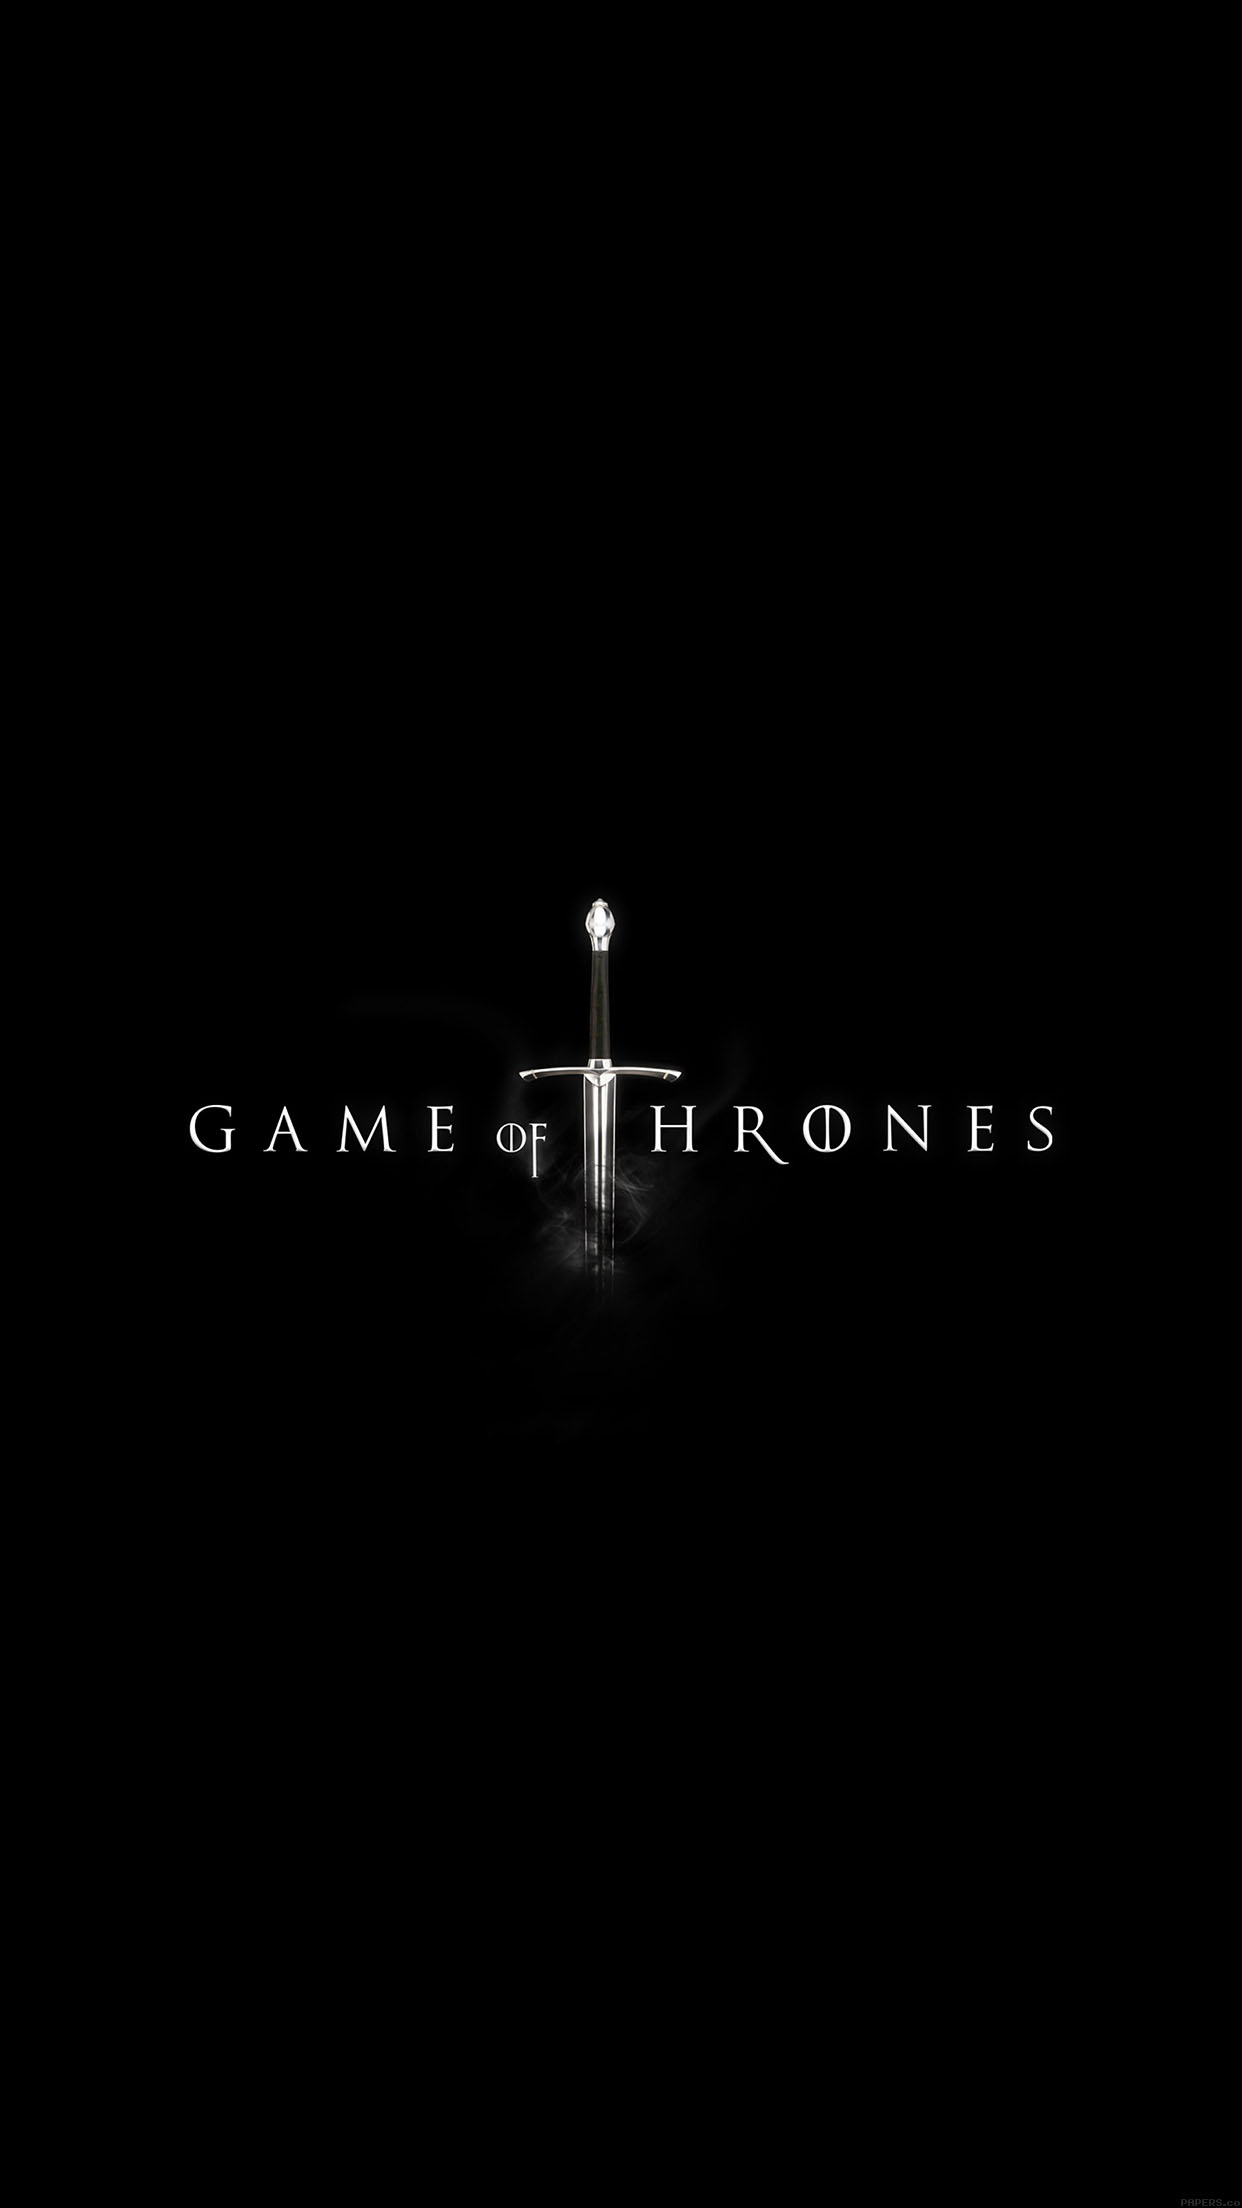 Iphone6papers Ab81 Wallpaper Game Of Thrones Dark